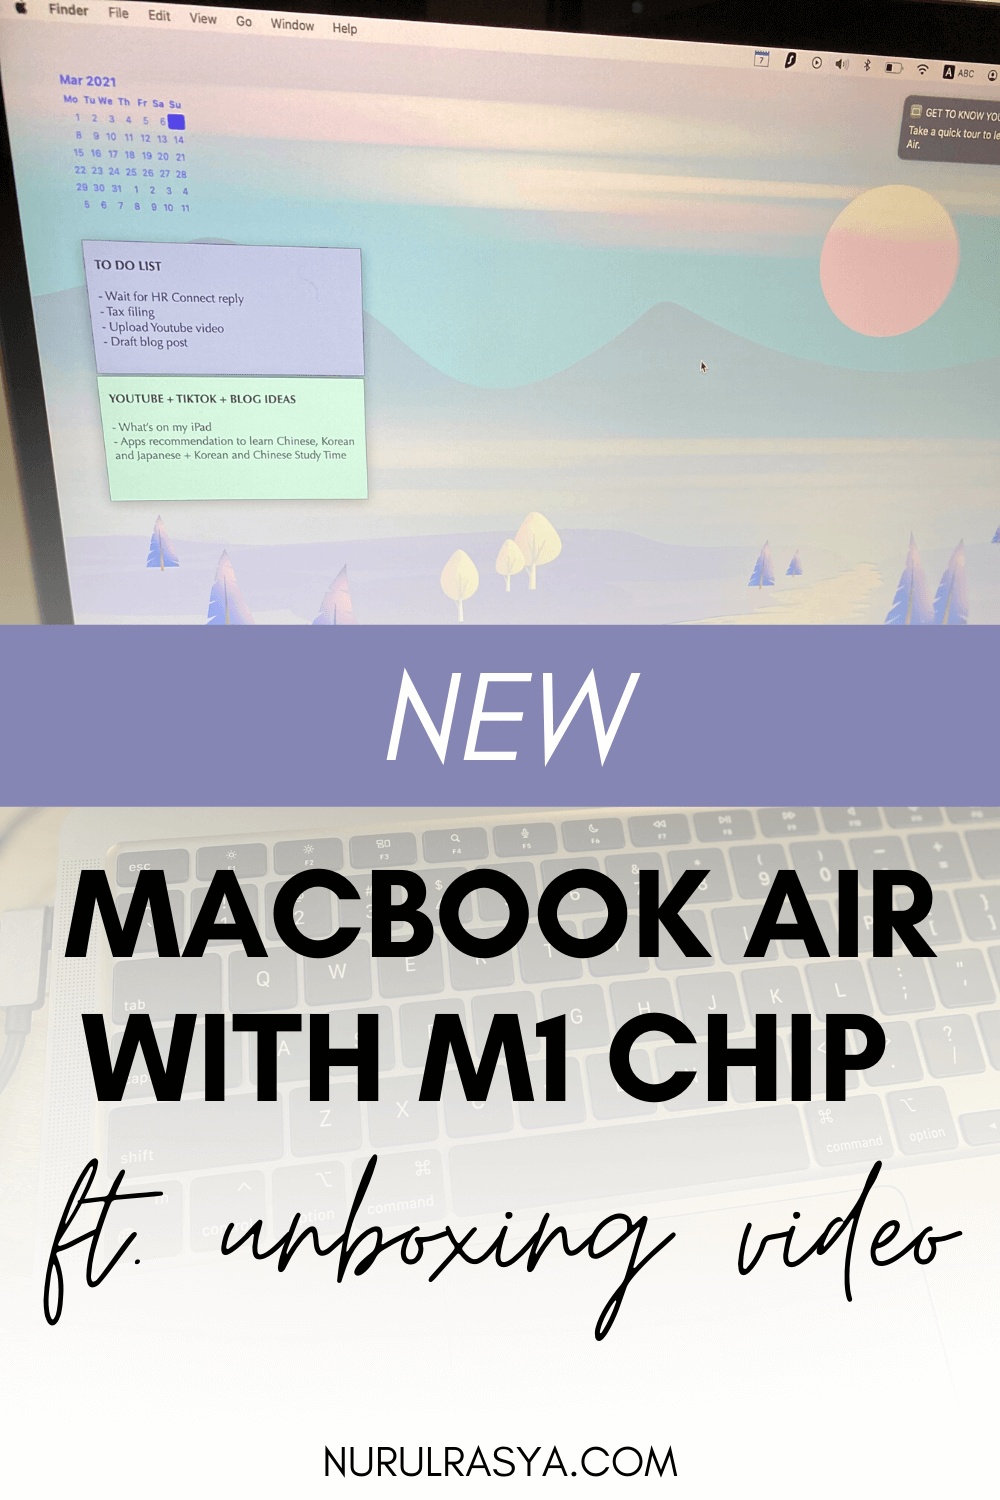 New MacBook Air M1 Chip Feat Unboxing Video